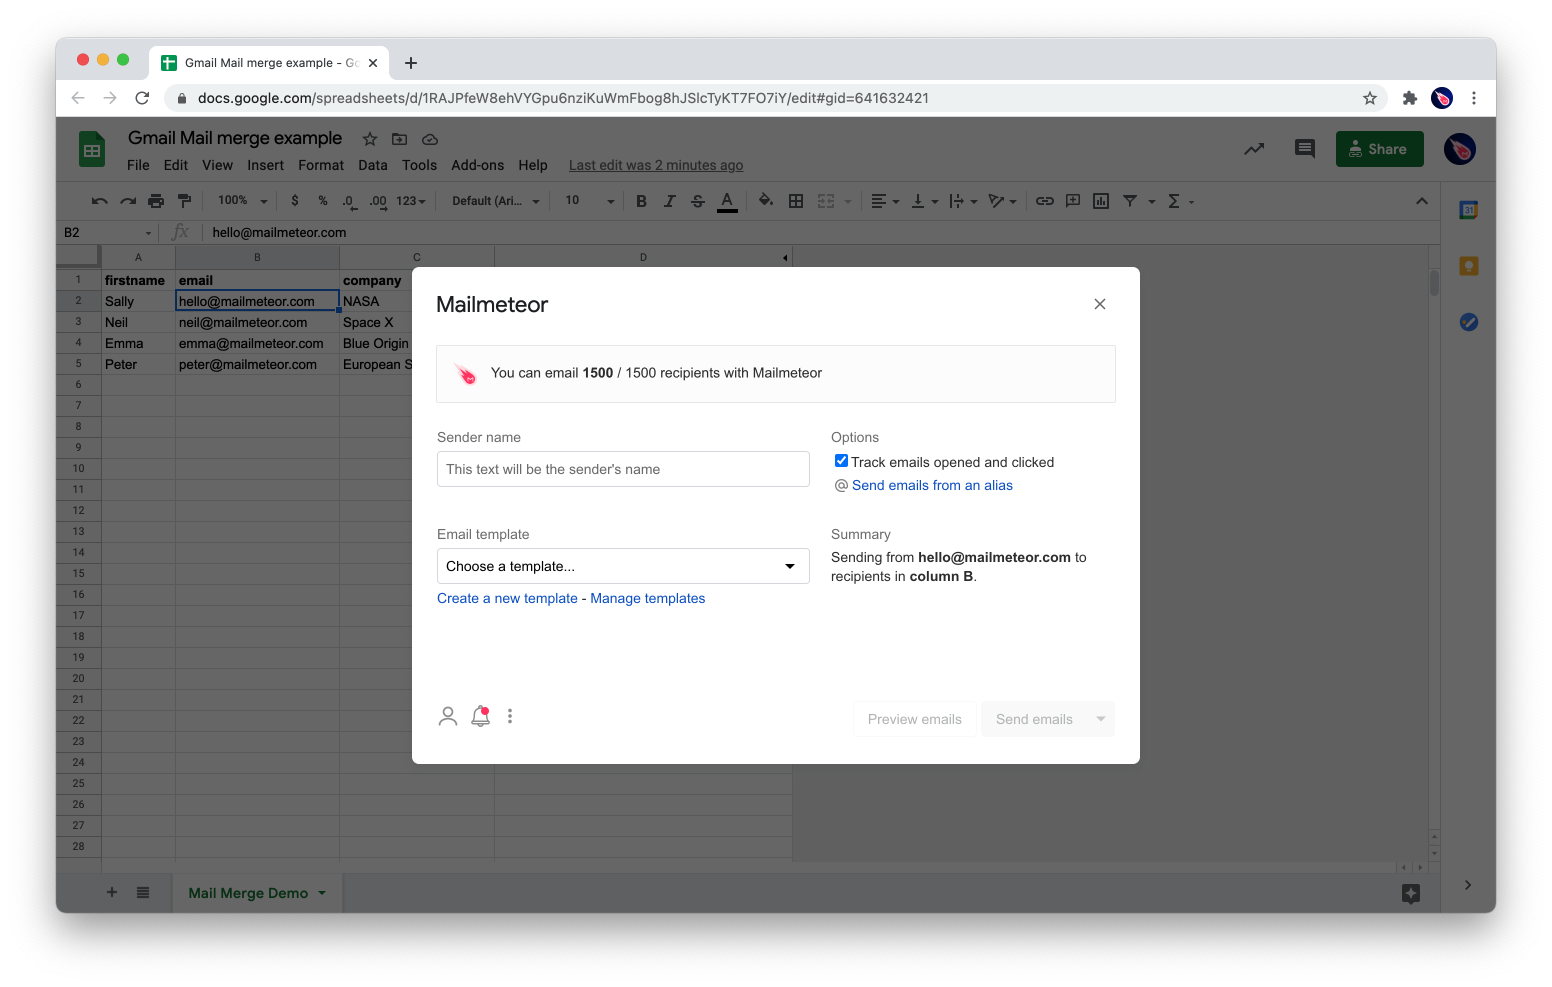 Mailmeteor add-on to mail merge in Google Sheets